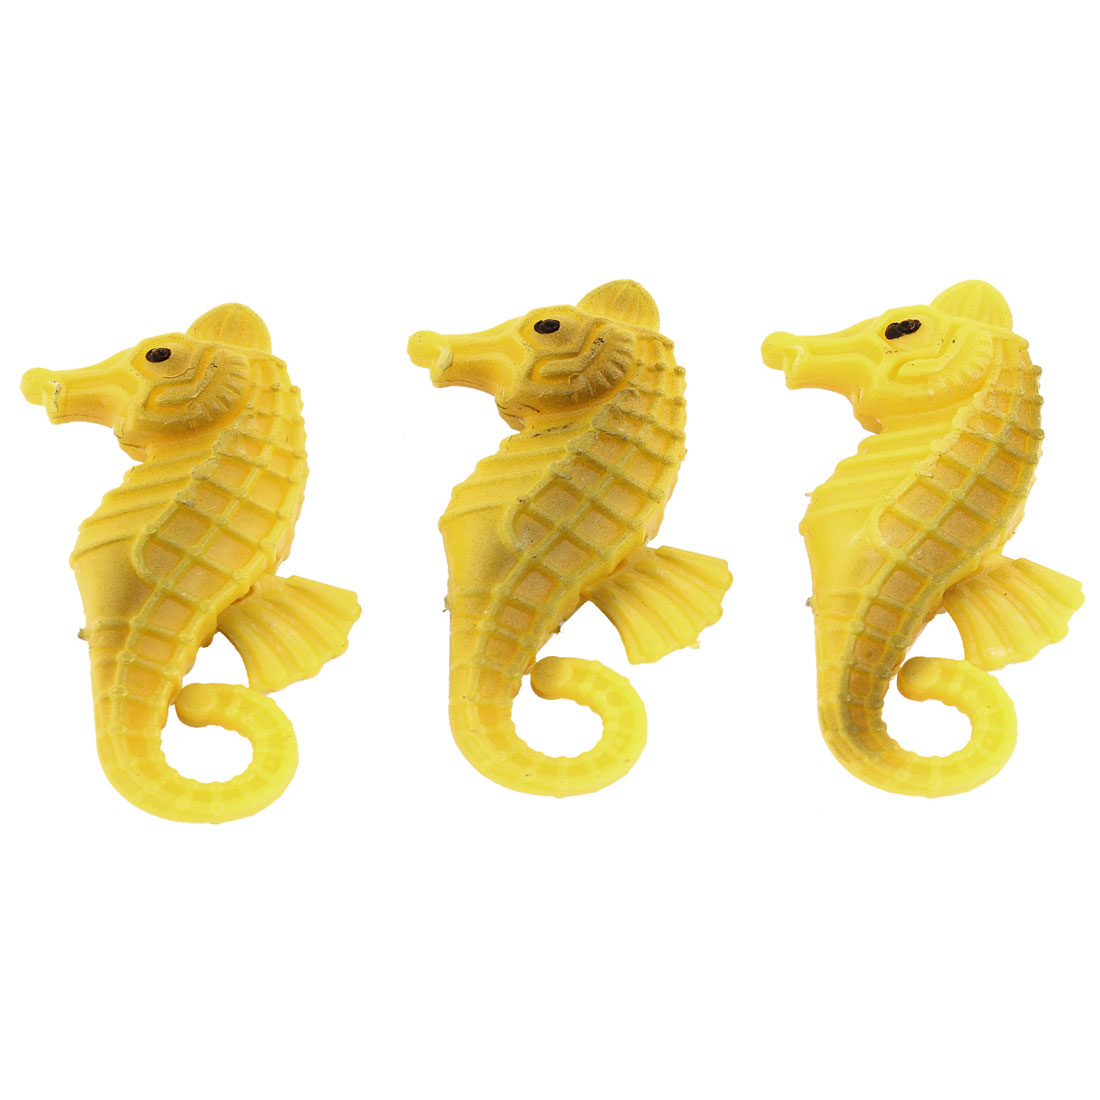 Fish Tank Aquarium Plastic Artificial Seahorse Floating Ornament Yellow 3 Pcs